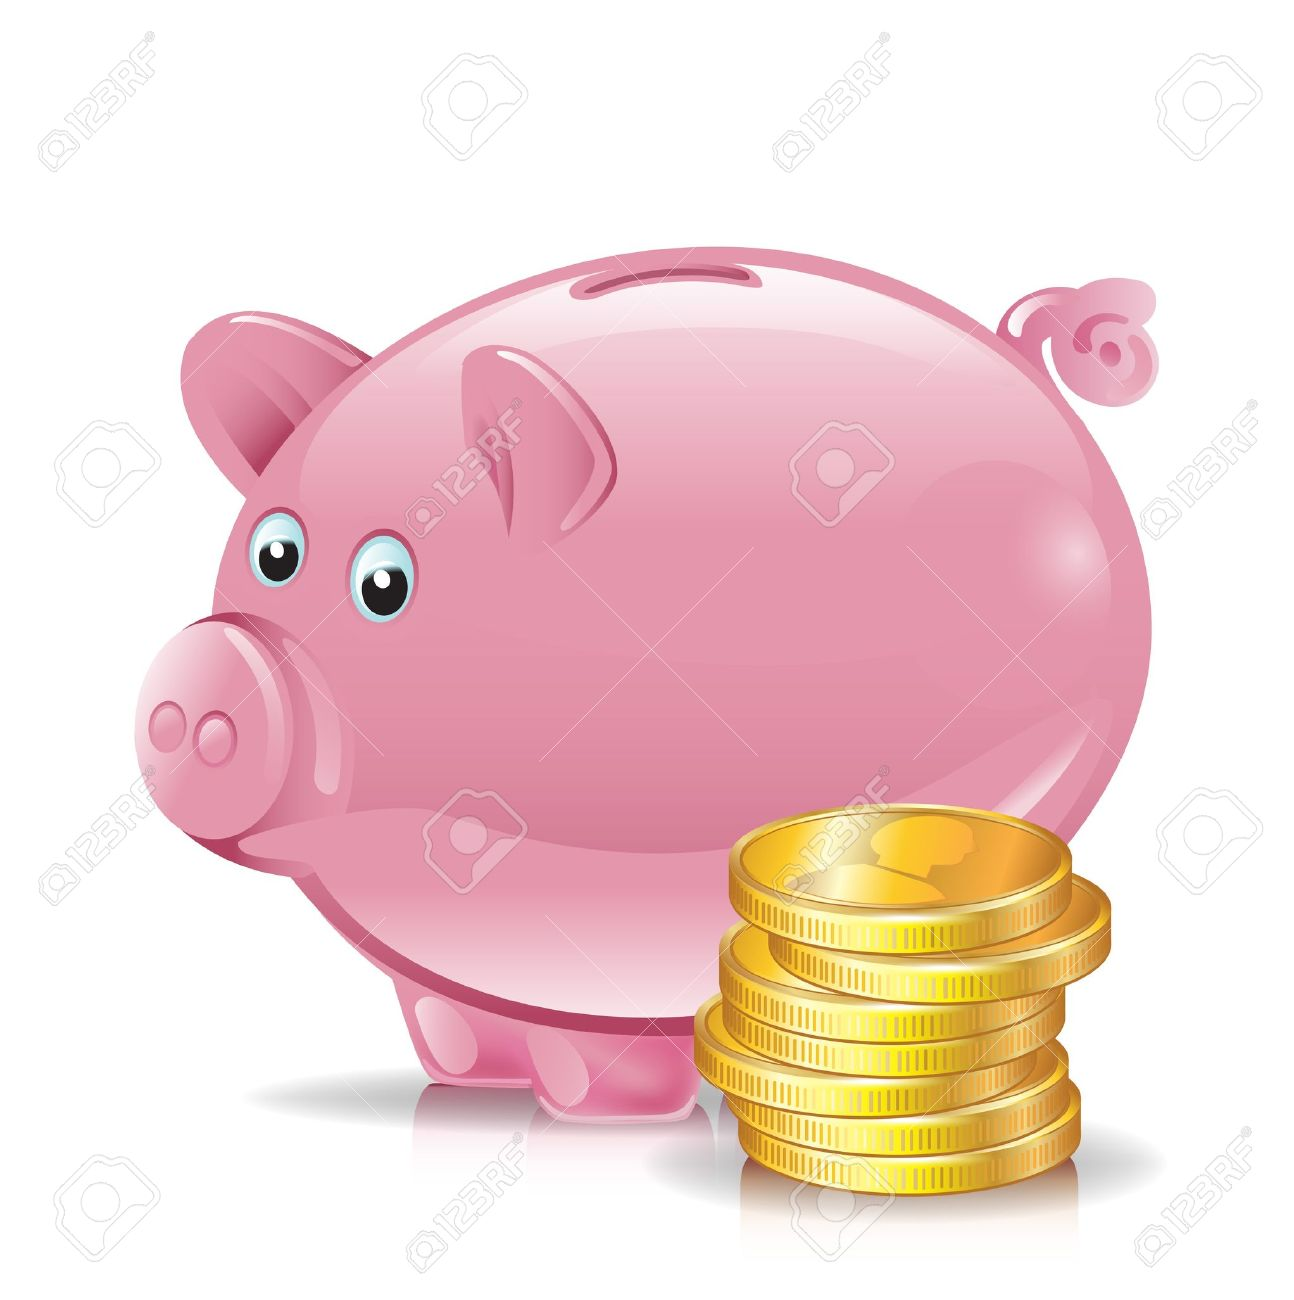 Piggy bank money clipart clip art freeuse stock Stack Of Golden Coins With Piggy Bank Royalty Free Cliparts ... clip art freeuse stock